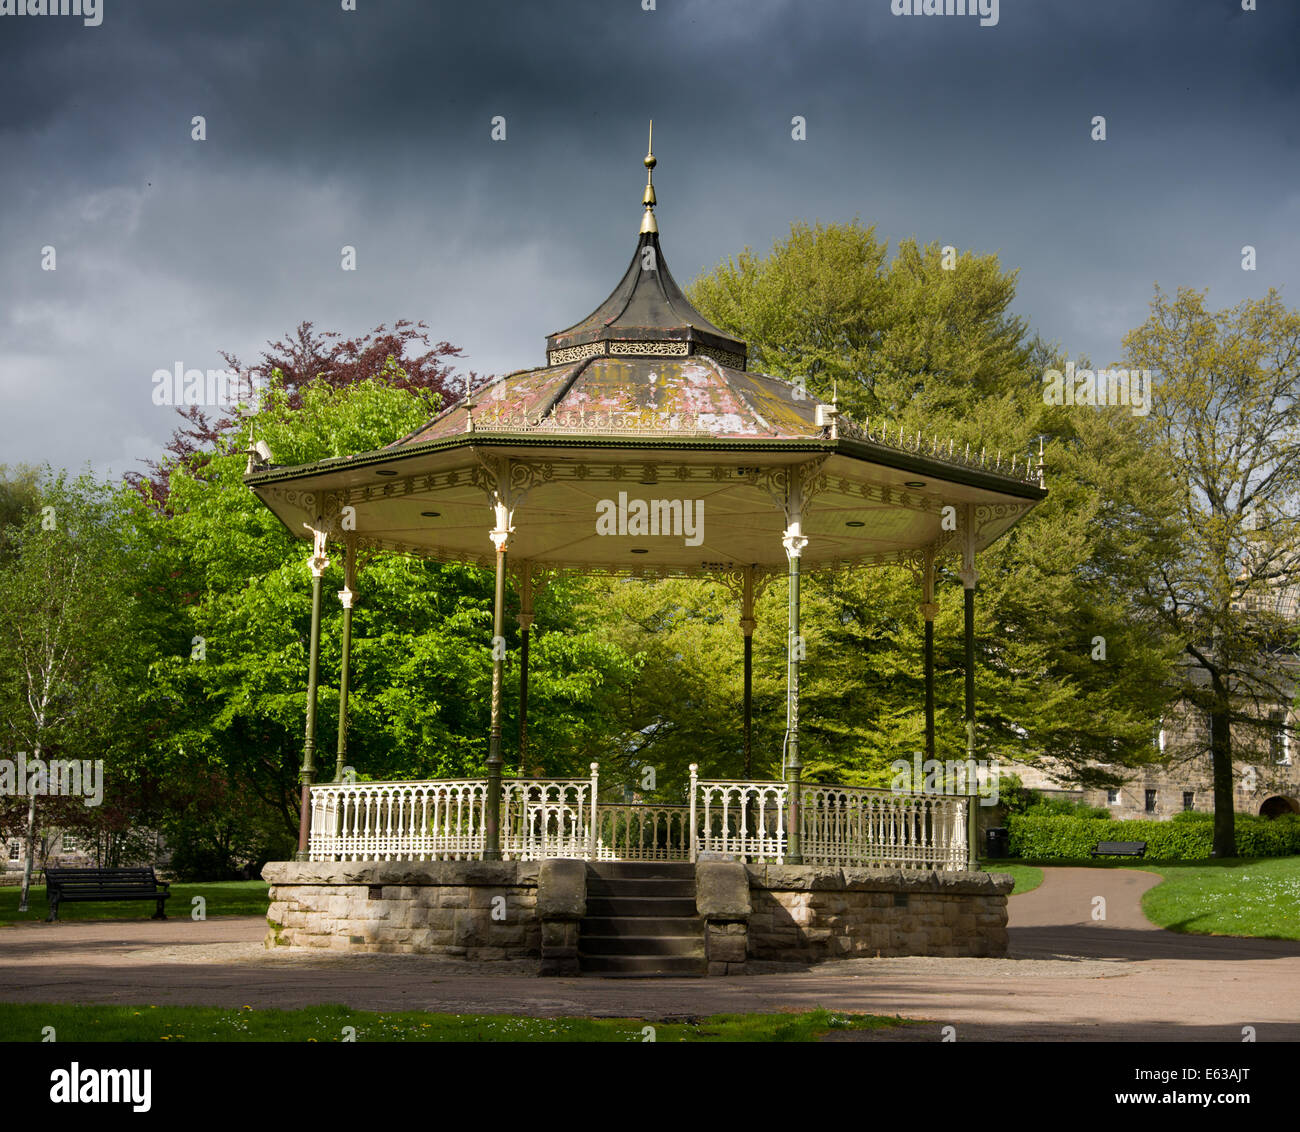 Bandstand - Stock Image